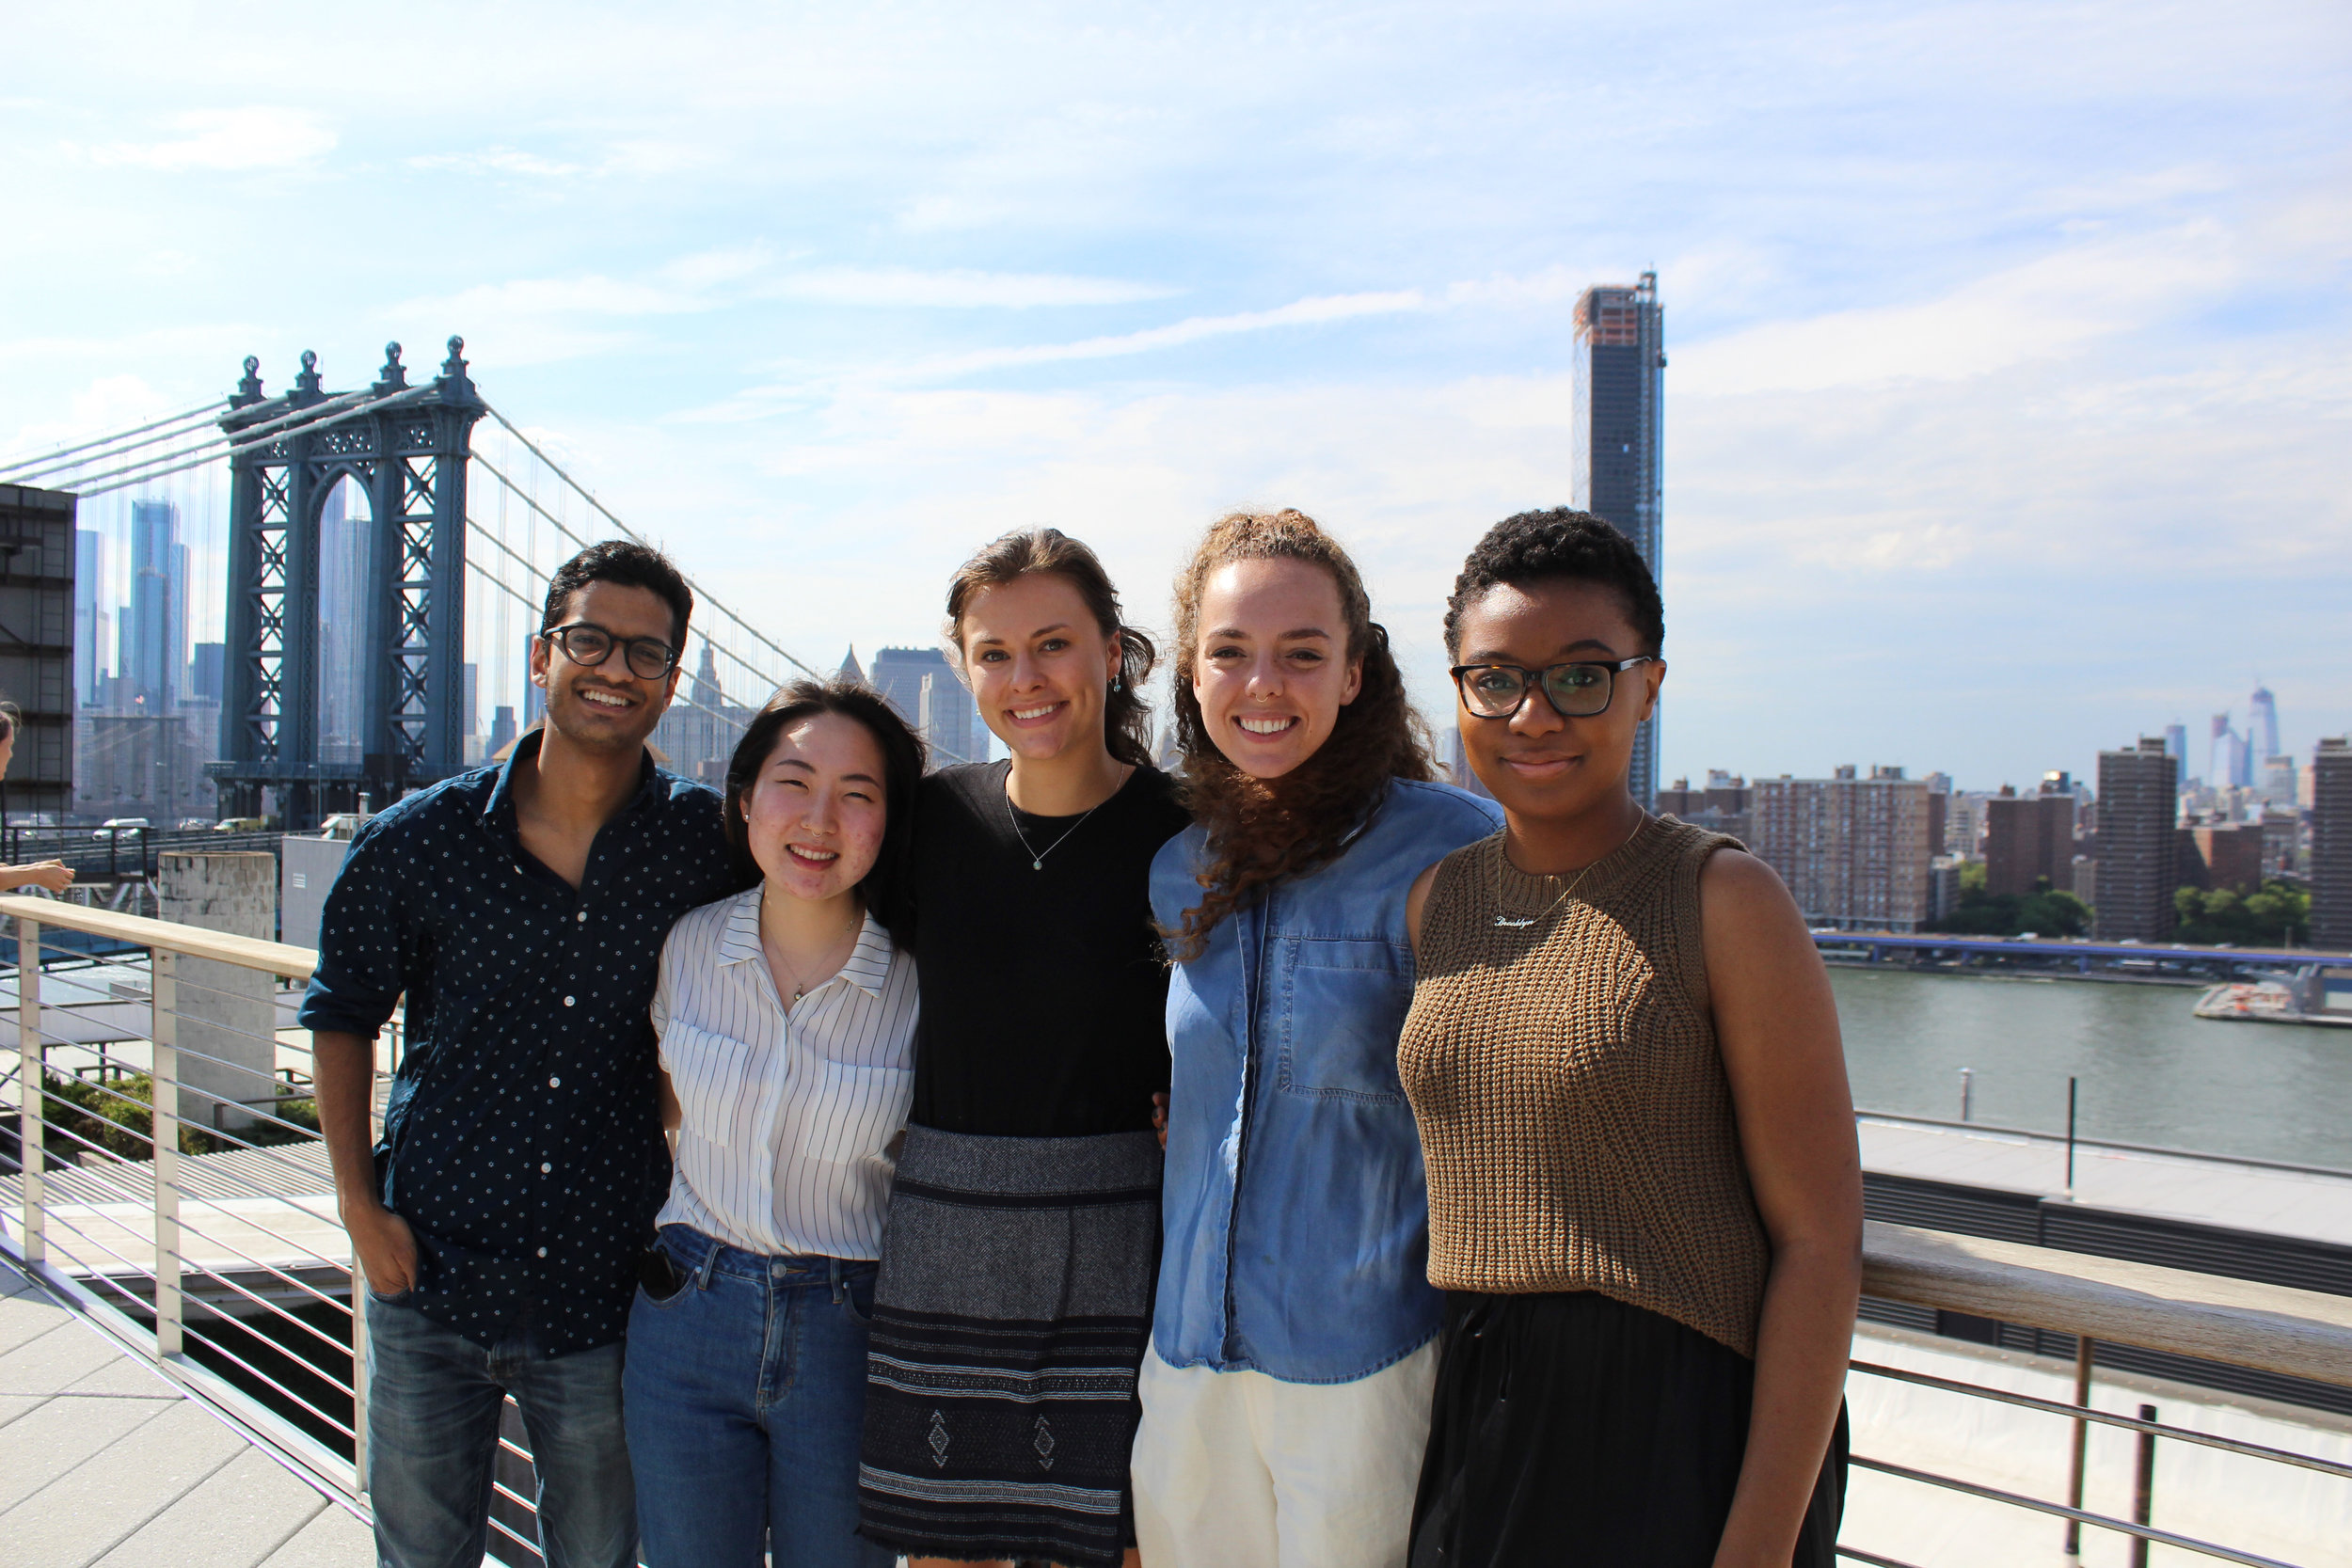 The 2018 TurboVote Summer Associates, from left to right: Jason, Jennifer, Andrea, Piper, and Thamara